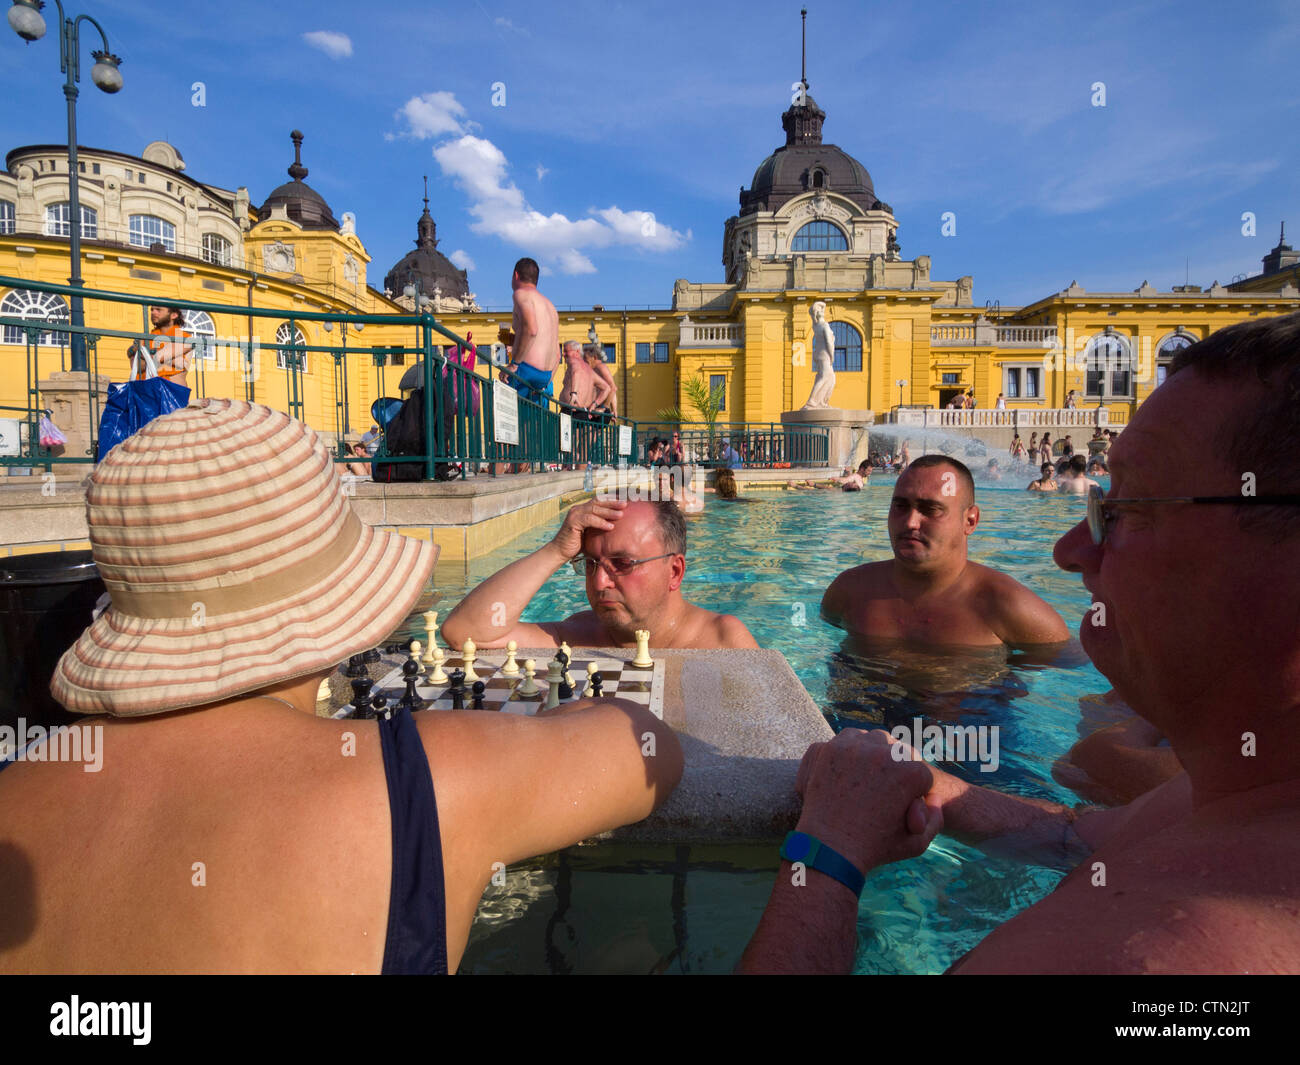 People playing chess in the water at Szechenyi thermal baths, Budapest, Hungary, Eastern Europe - Stock Image